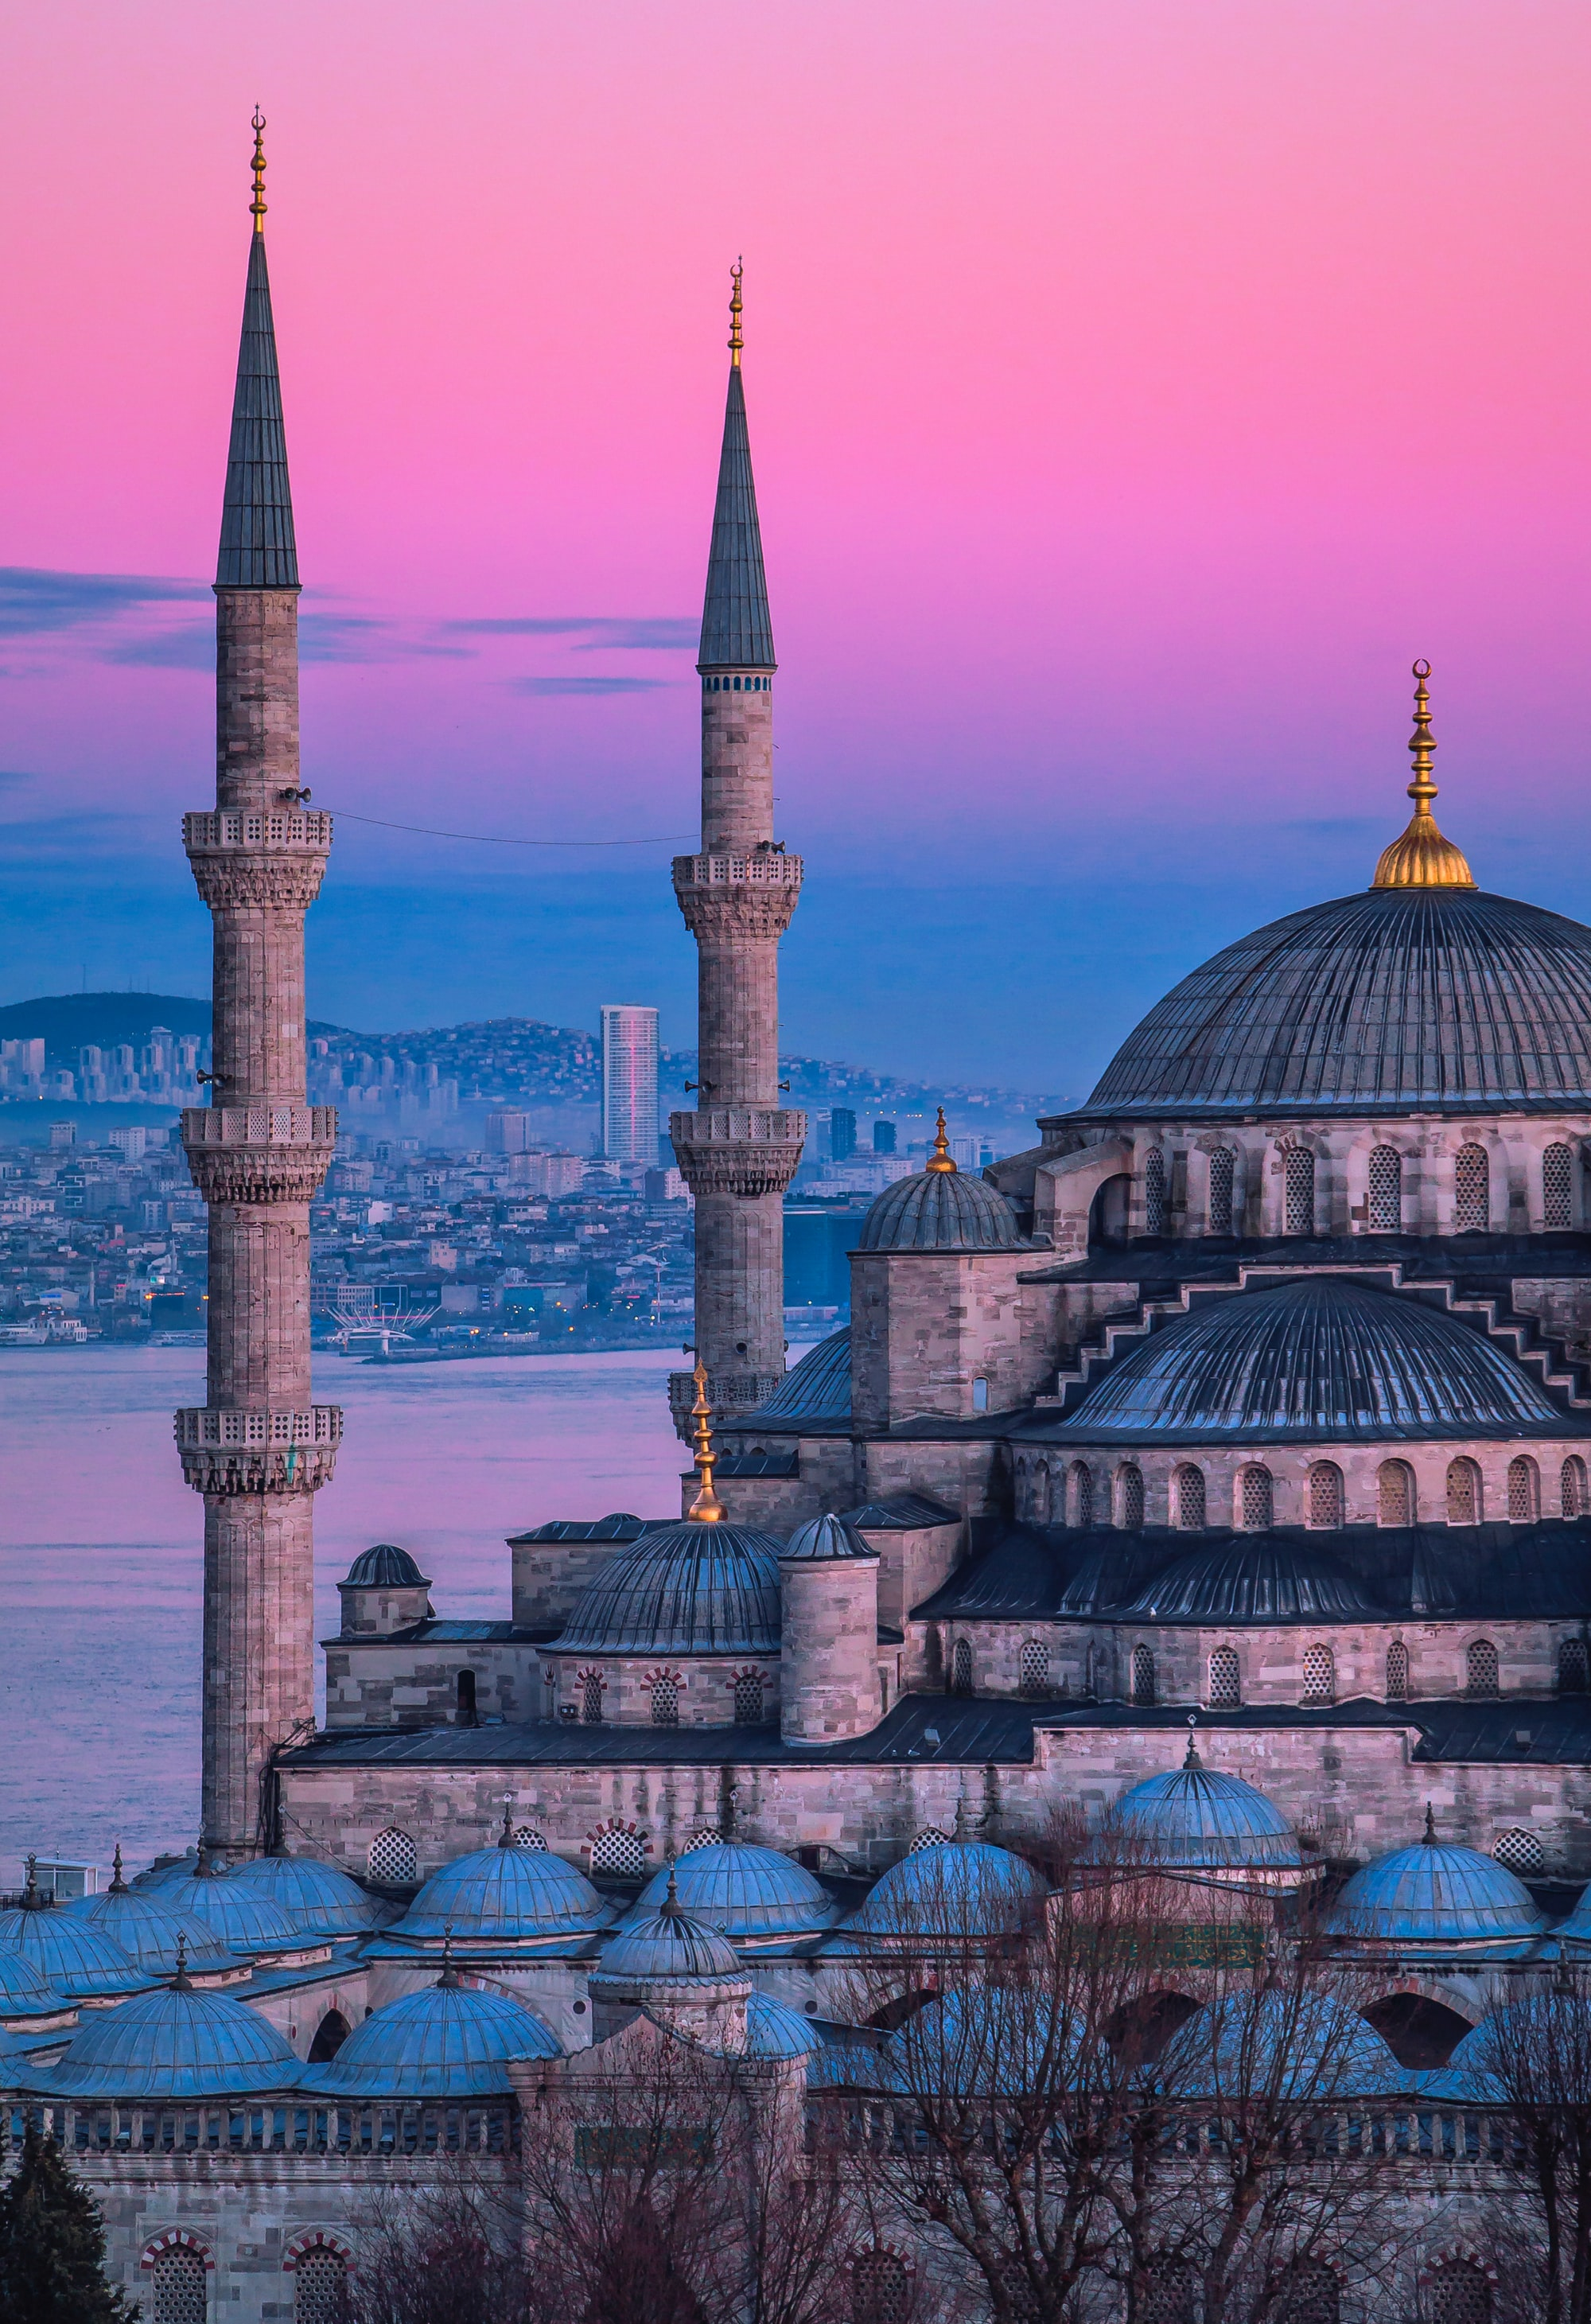 Islam and Capitalism: The Convergence and Divergence